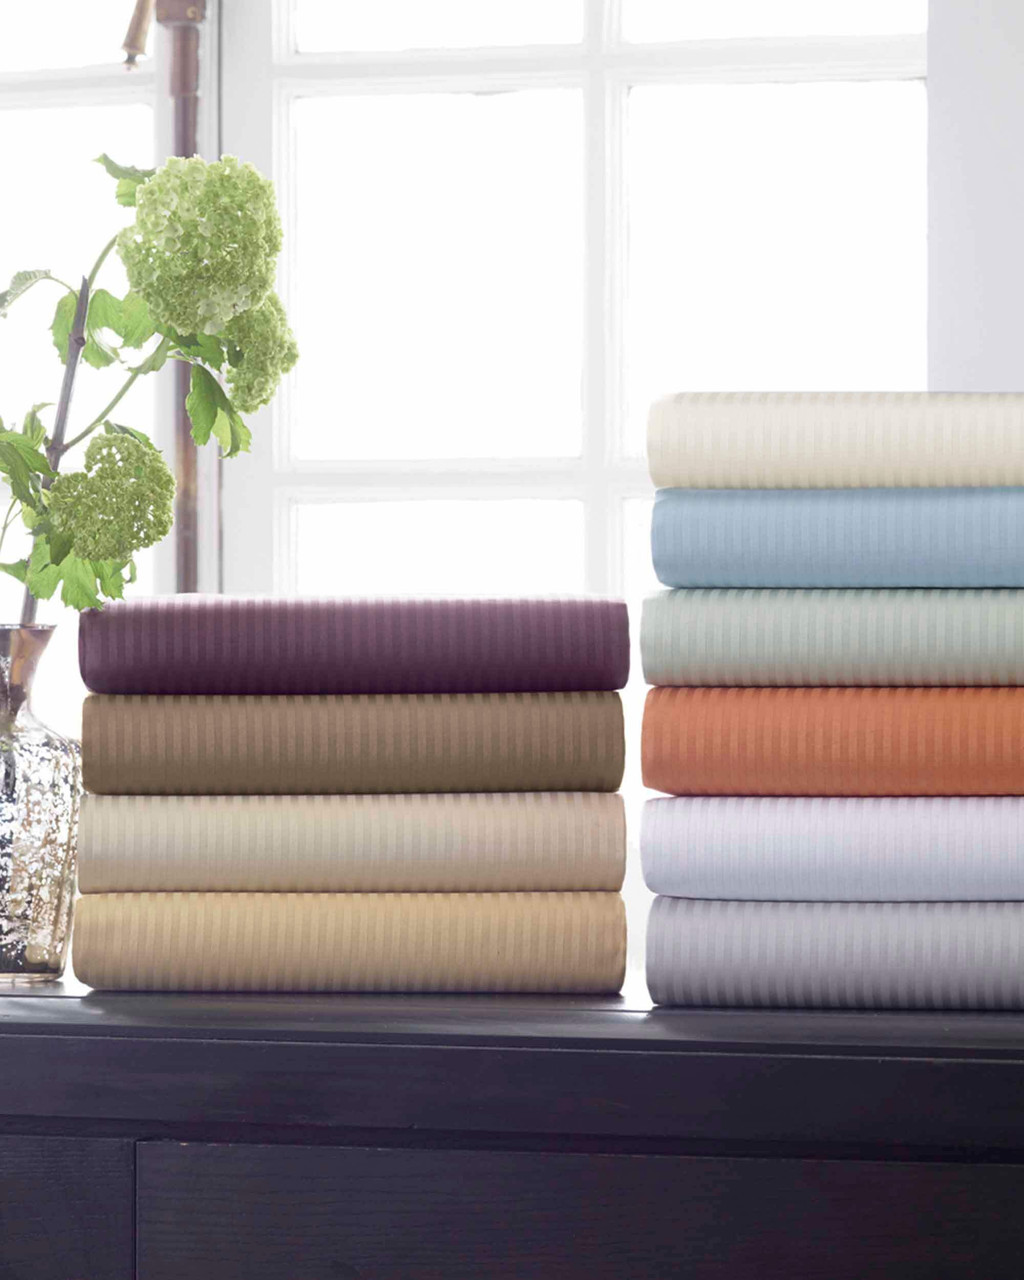 scandia down savoia fitted sheets, scandia home savoia fitted sheets, scandia down linens, scandia home linens